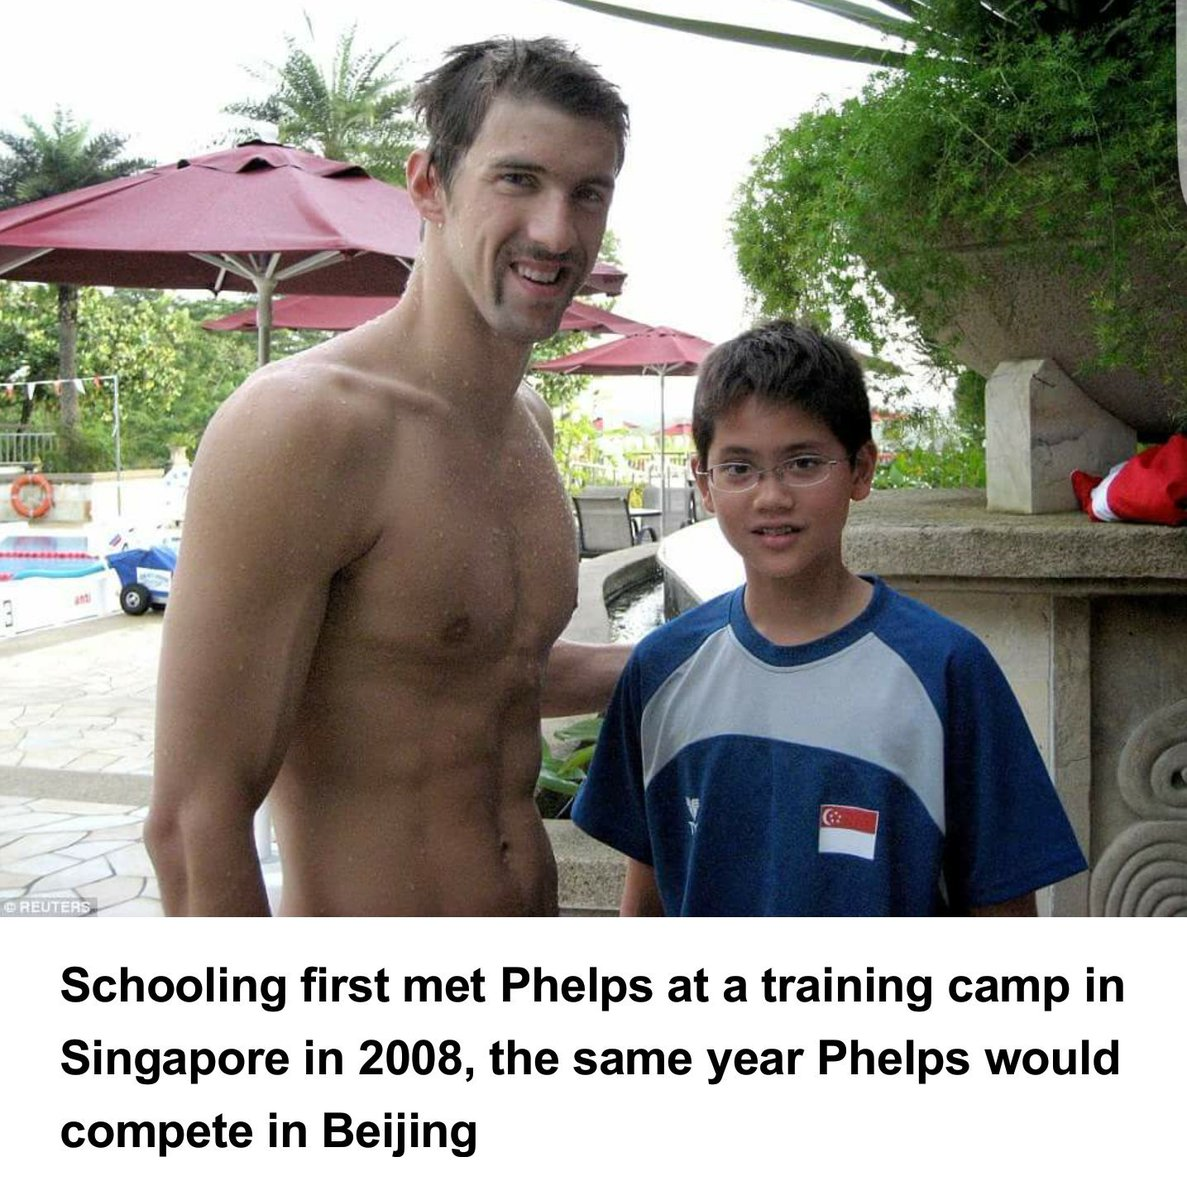 This is what dreams are made of, 21 years old Joseph Schooling from Singapore beating his idol #Phelps for the gold. https://t.co/8yENZ30nWz